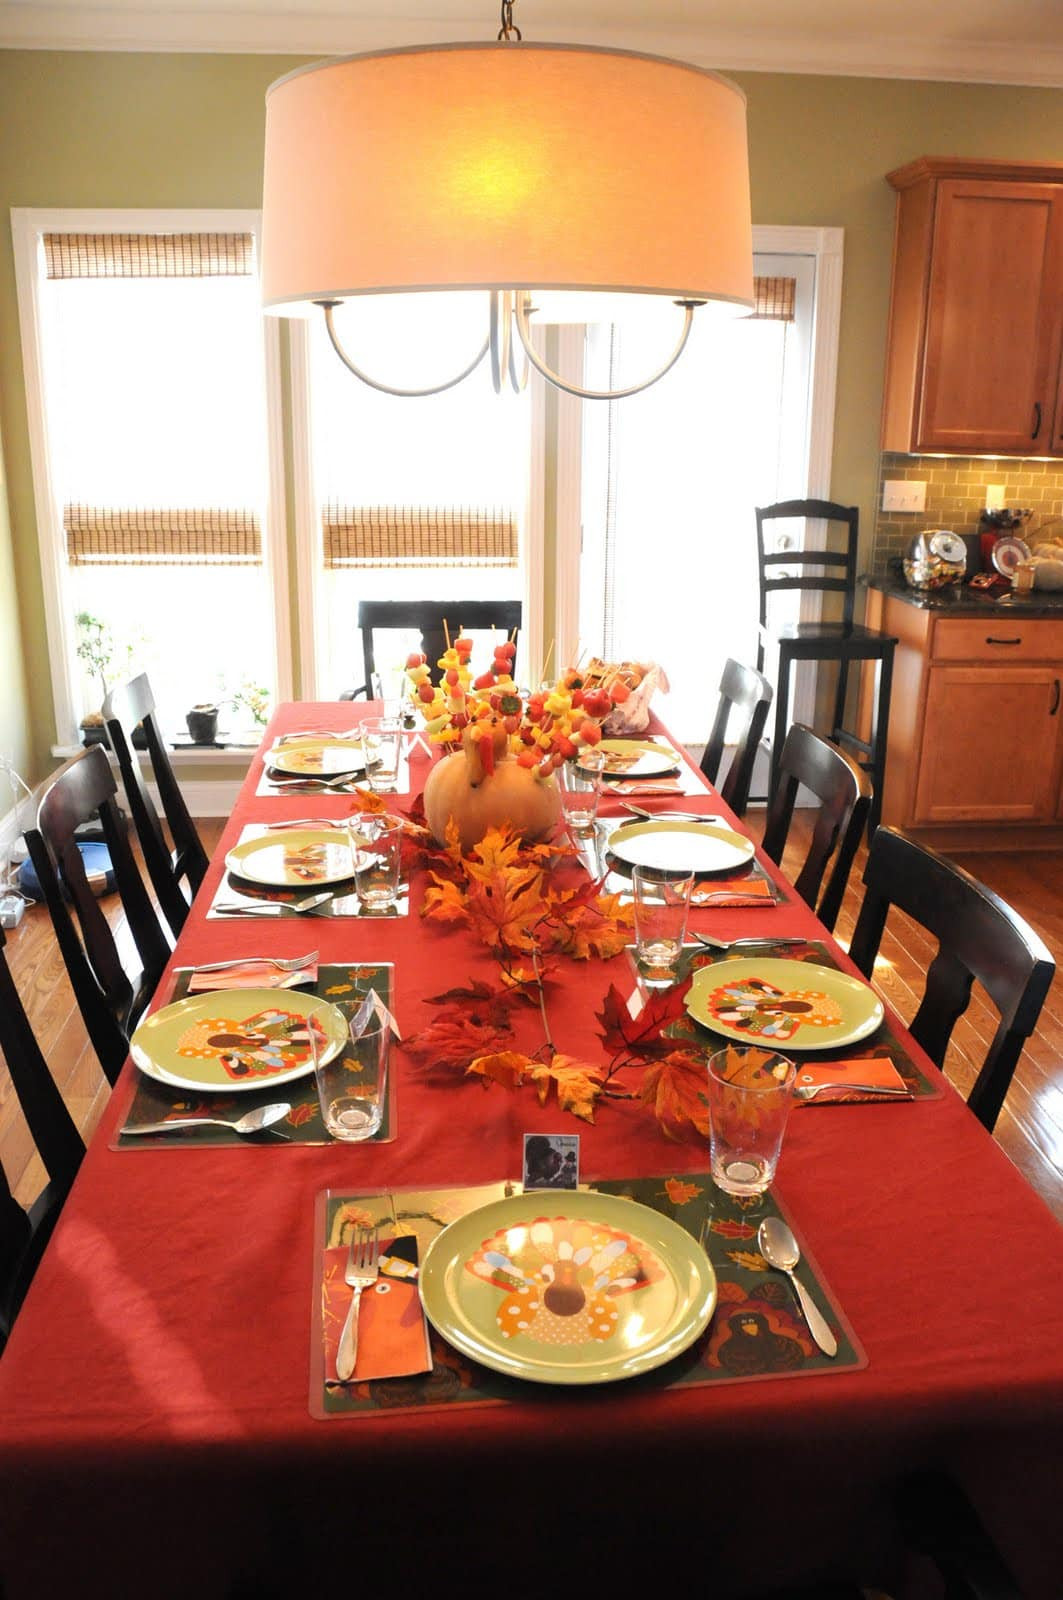 Thanksgiving Table Decor Ideas  Thanksgiving Decor The Polkadot Chair